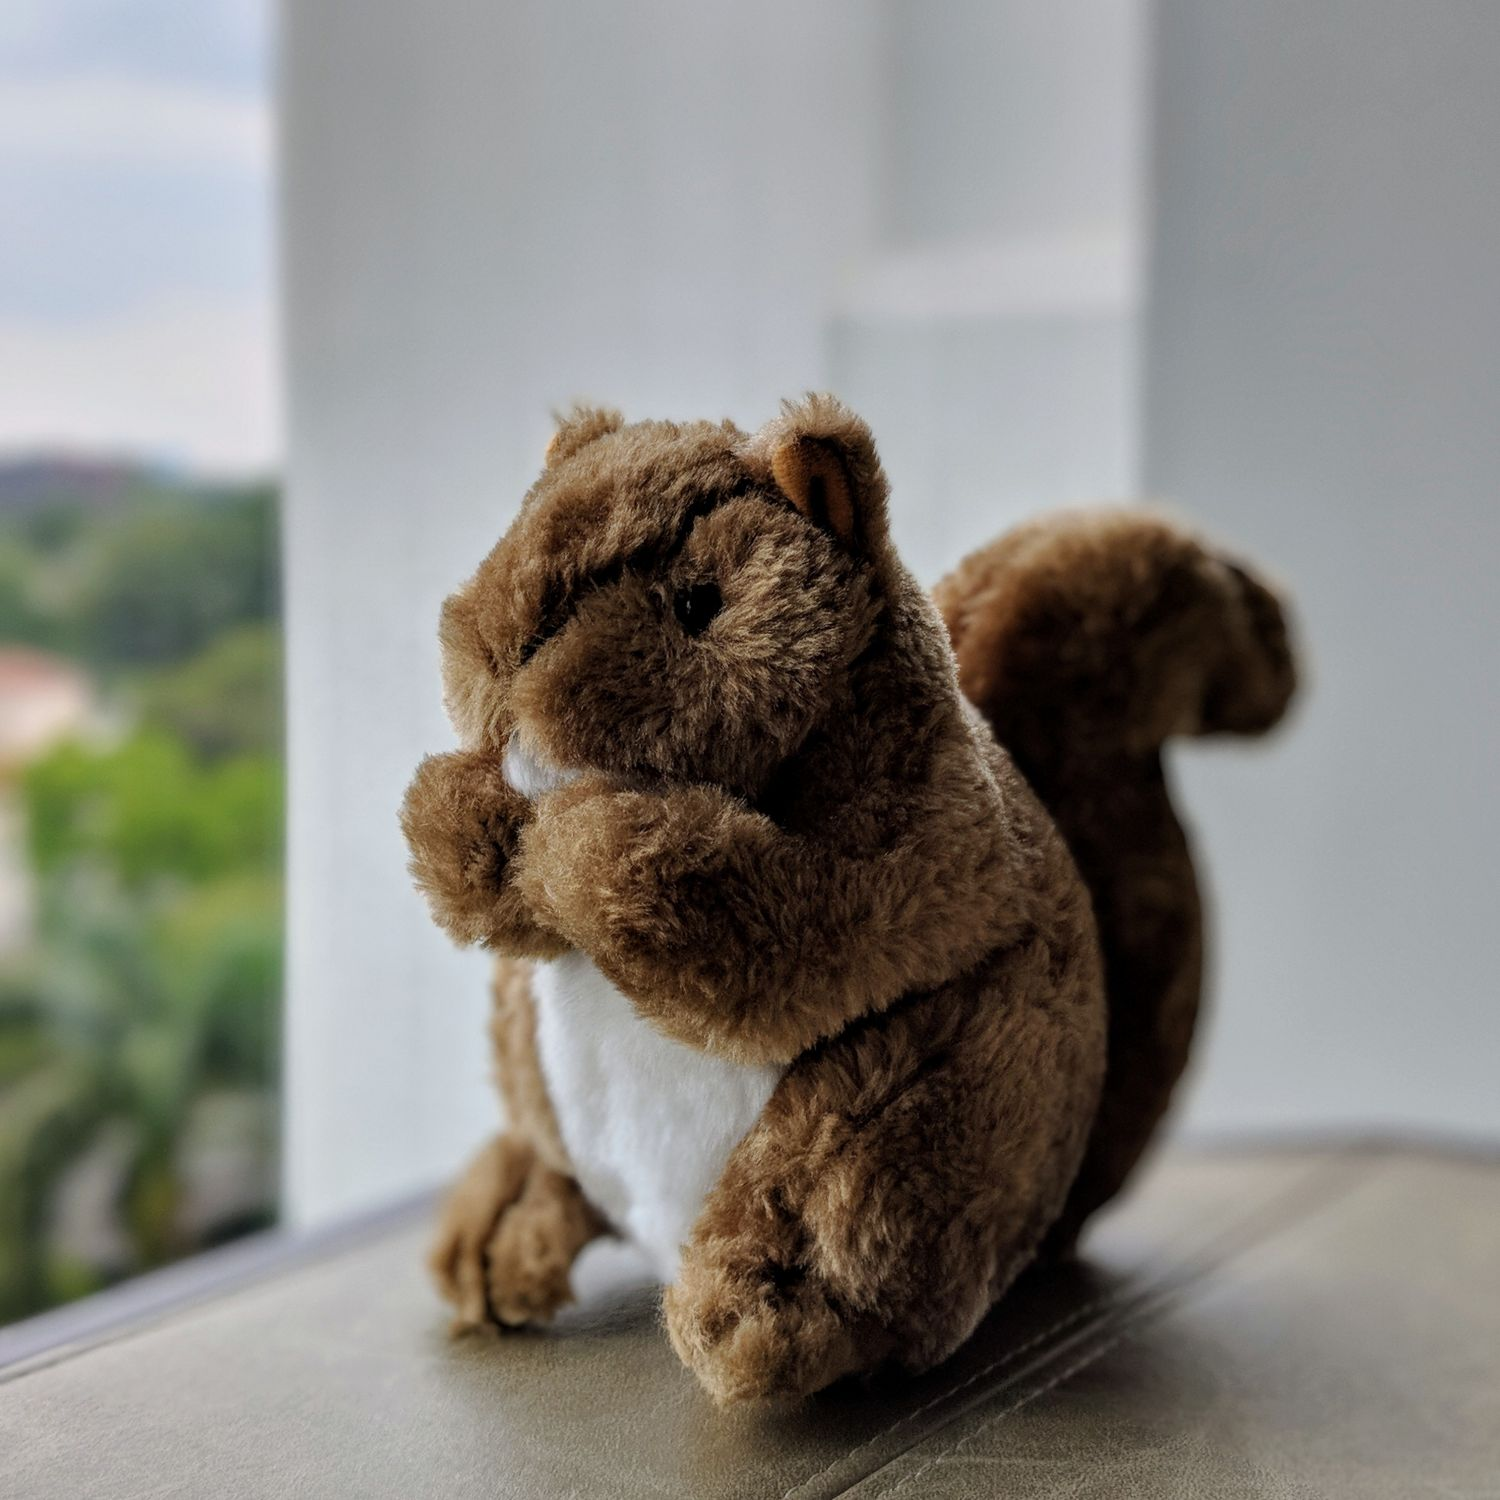 Shangri-La Hotel Singapore Squirrel Mascot